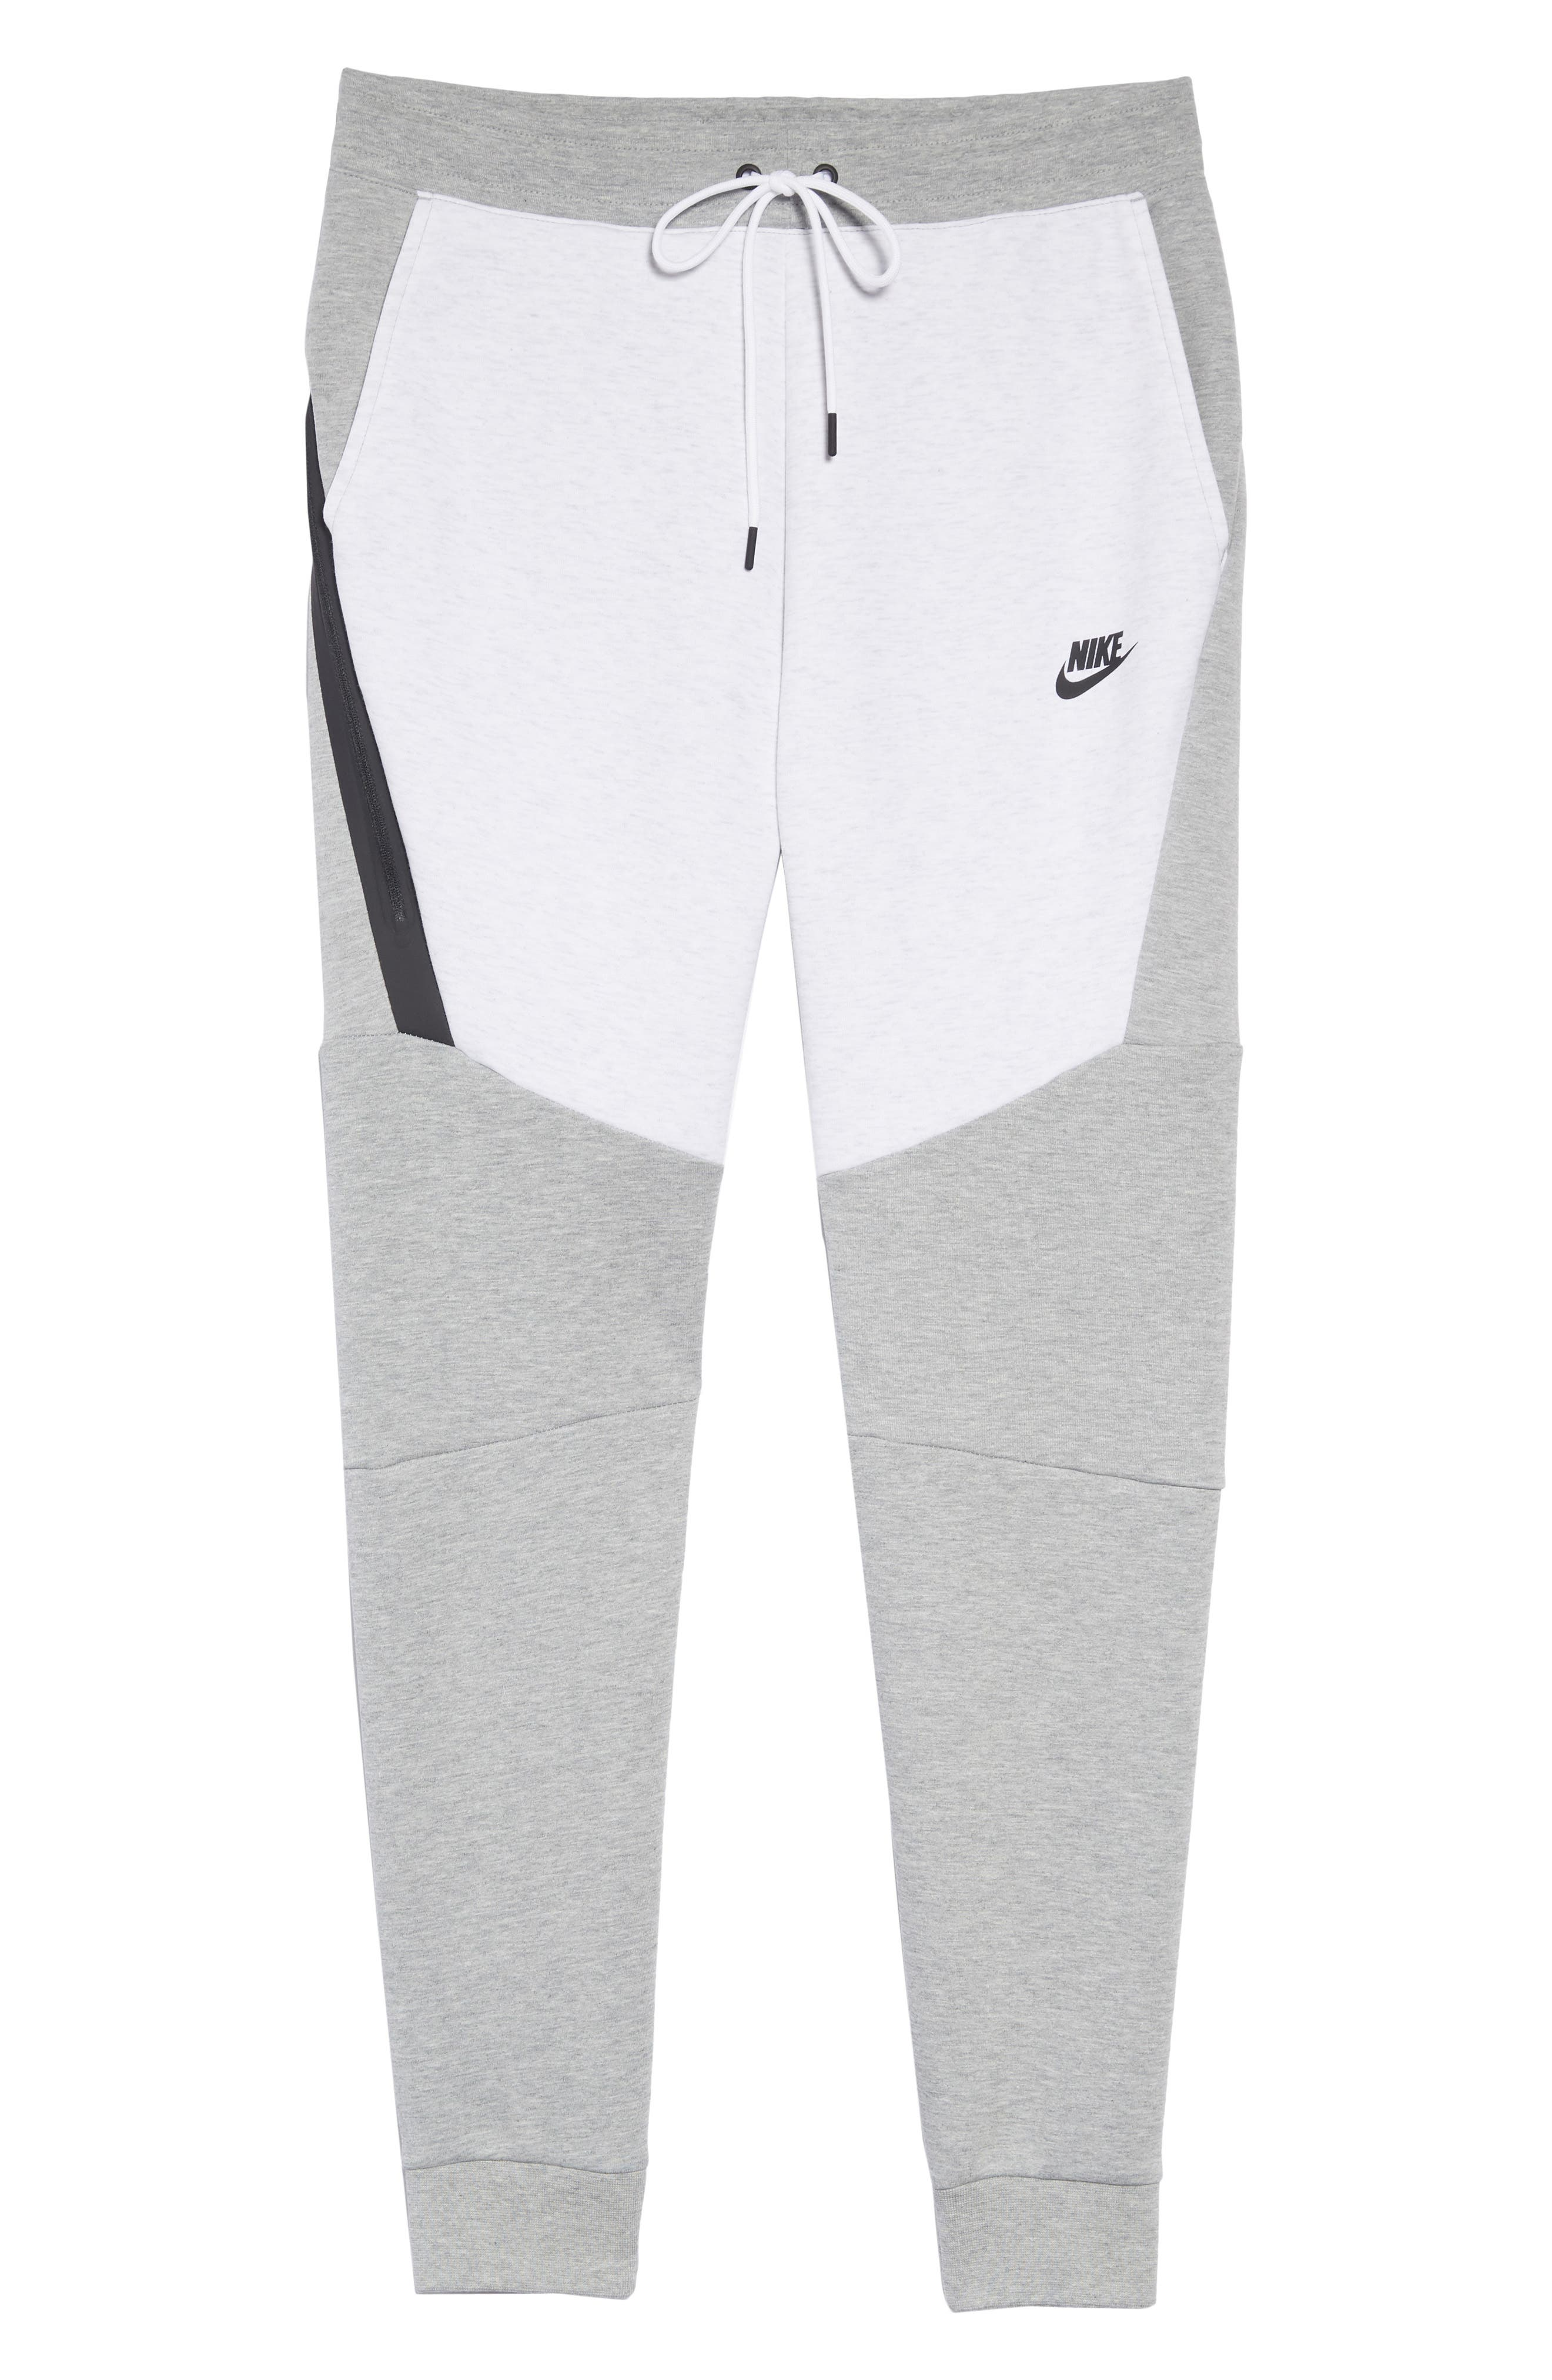 Tech Fleece Jogger Pants,                             Alternate thumbnail 6, color,                             HEATHER/ BIRCH HEATHER/ BLACK